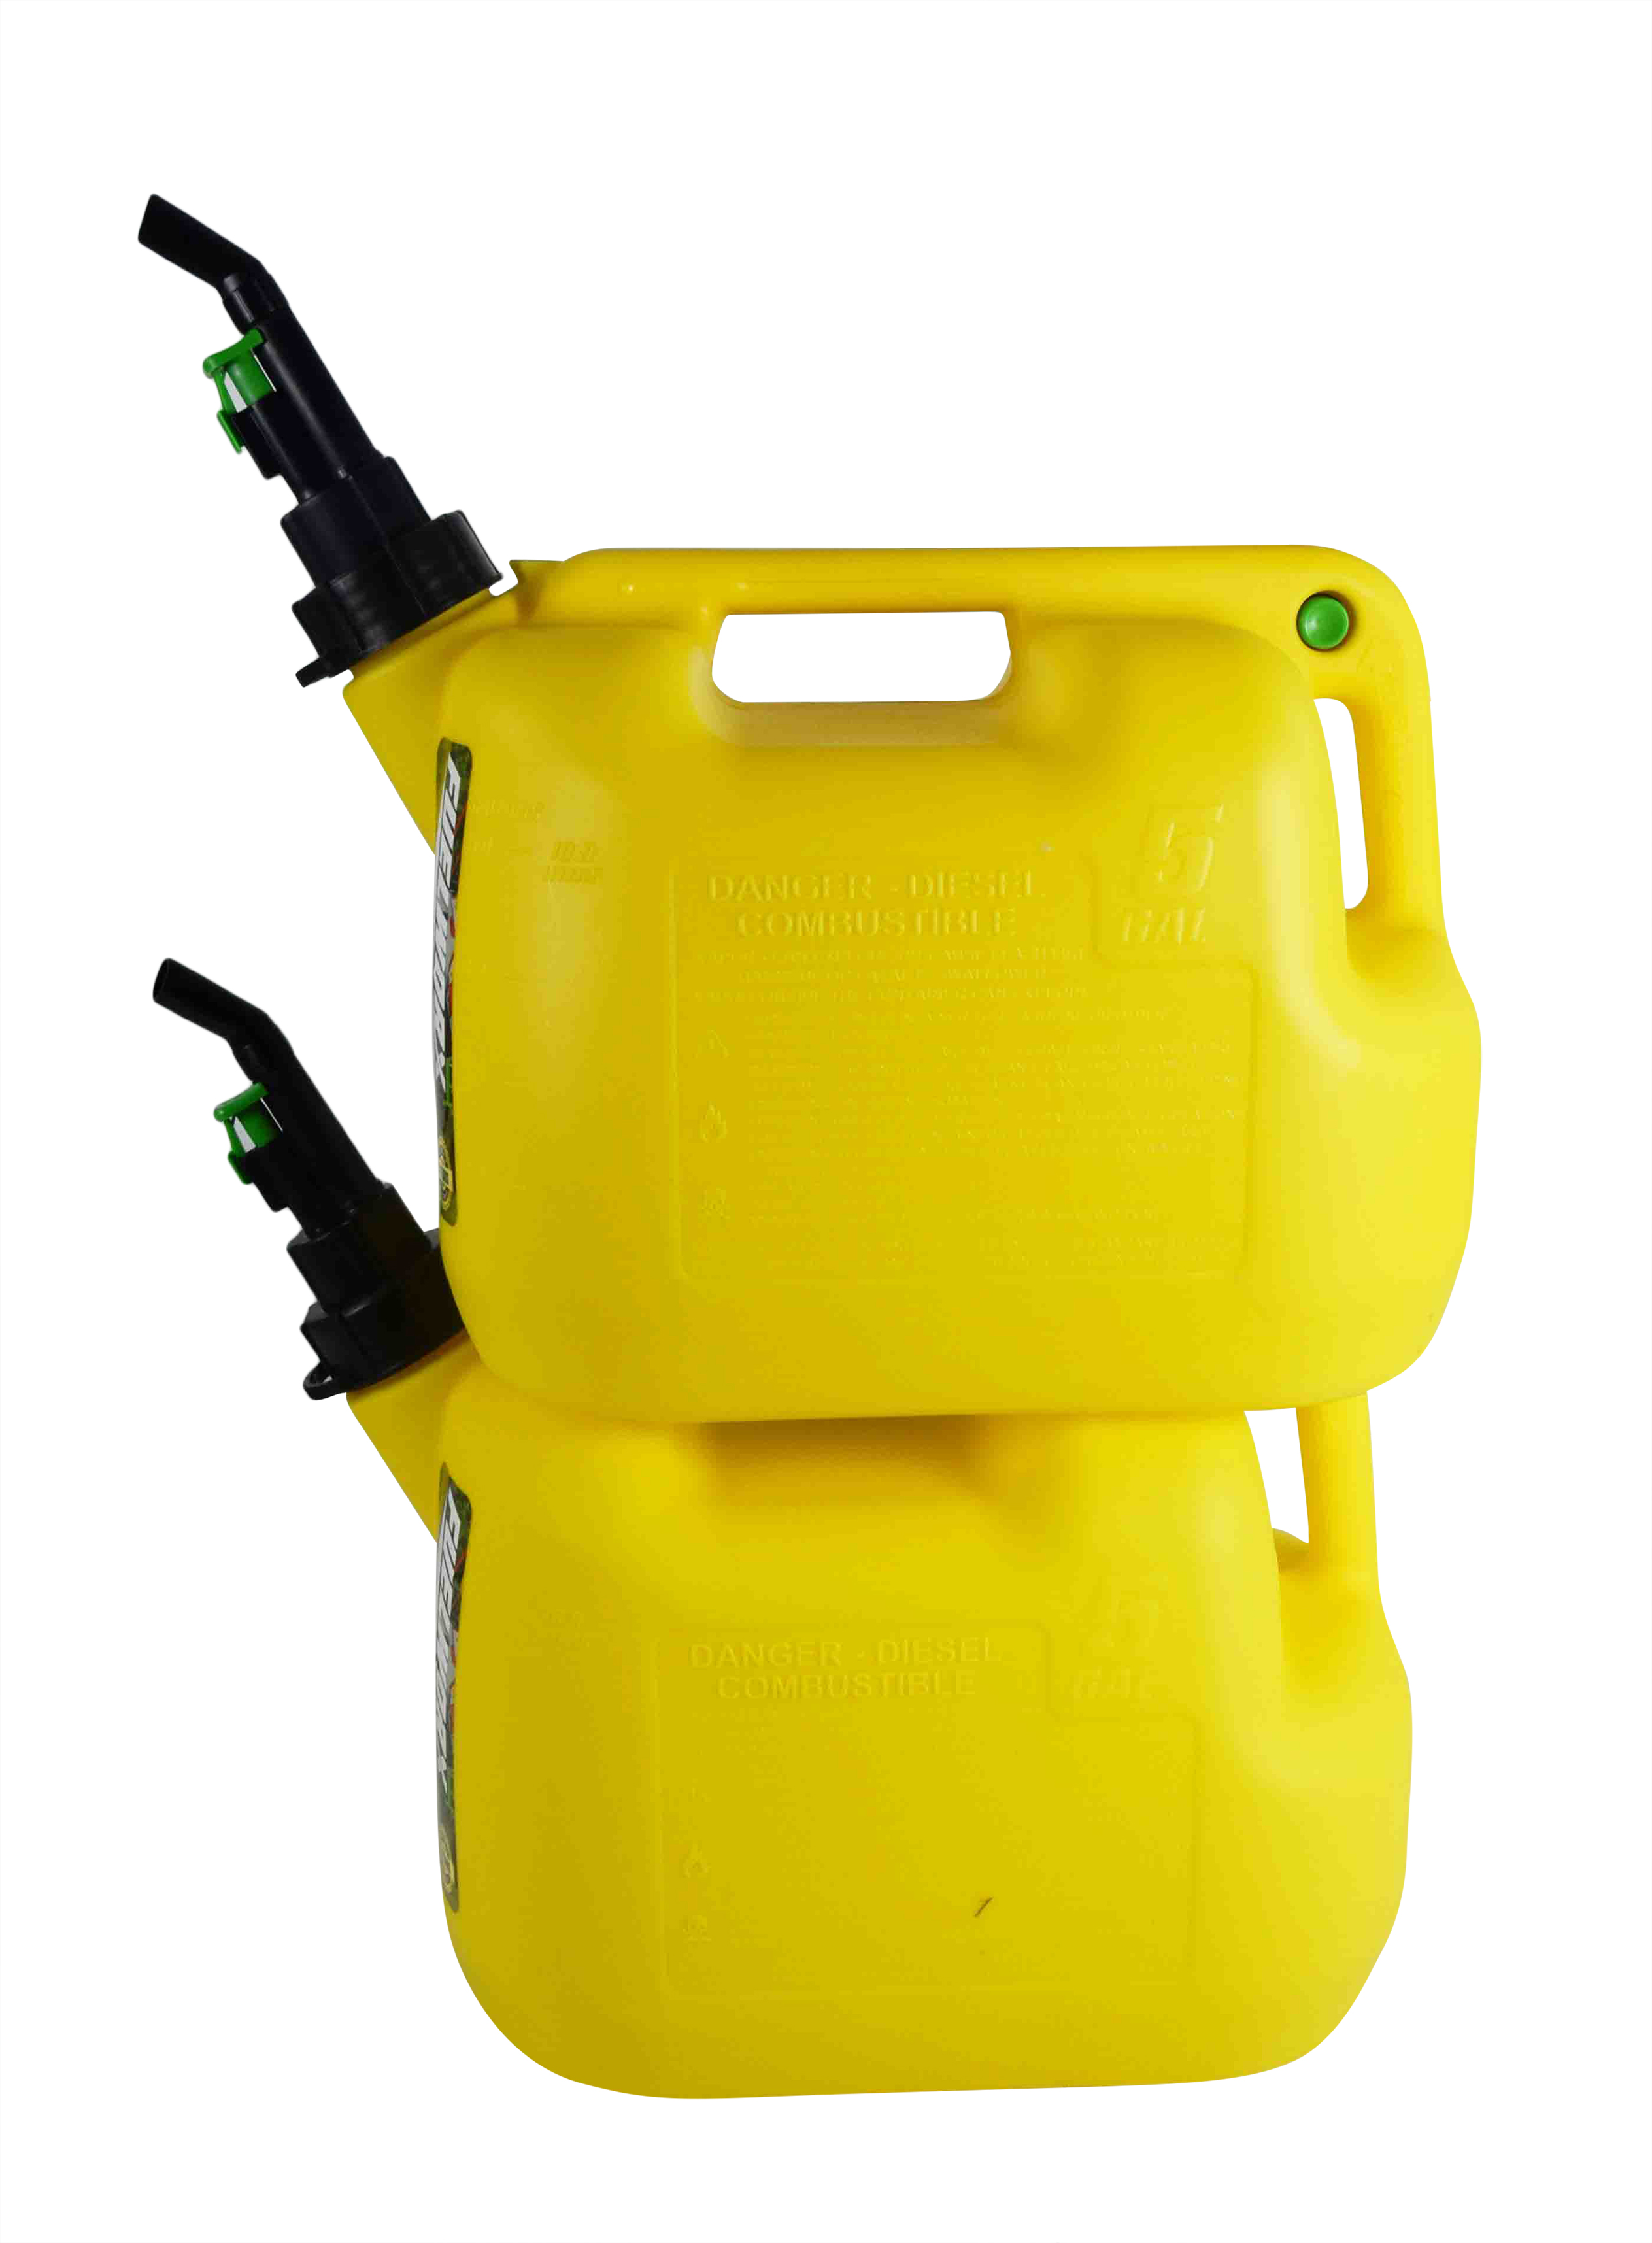 Fuelworx-Yellow-5-Gallon-Stackable-Fast-Pour-Diesel-Fuel-Cans-CARB-Compliant-Made-in-The-USA-5-Gallon-Diesel-Cans-2-Pack-image-2